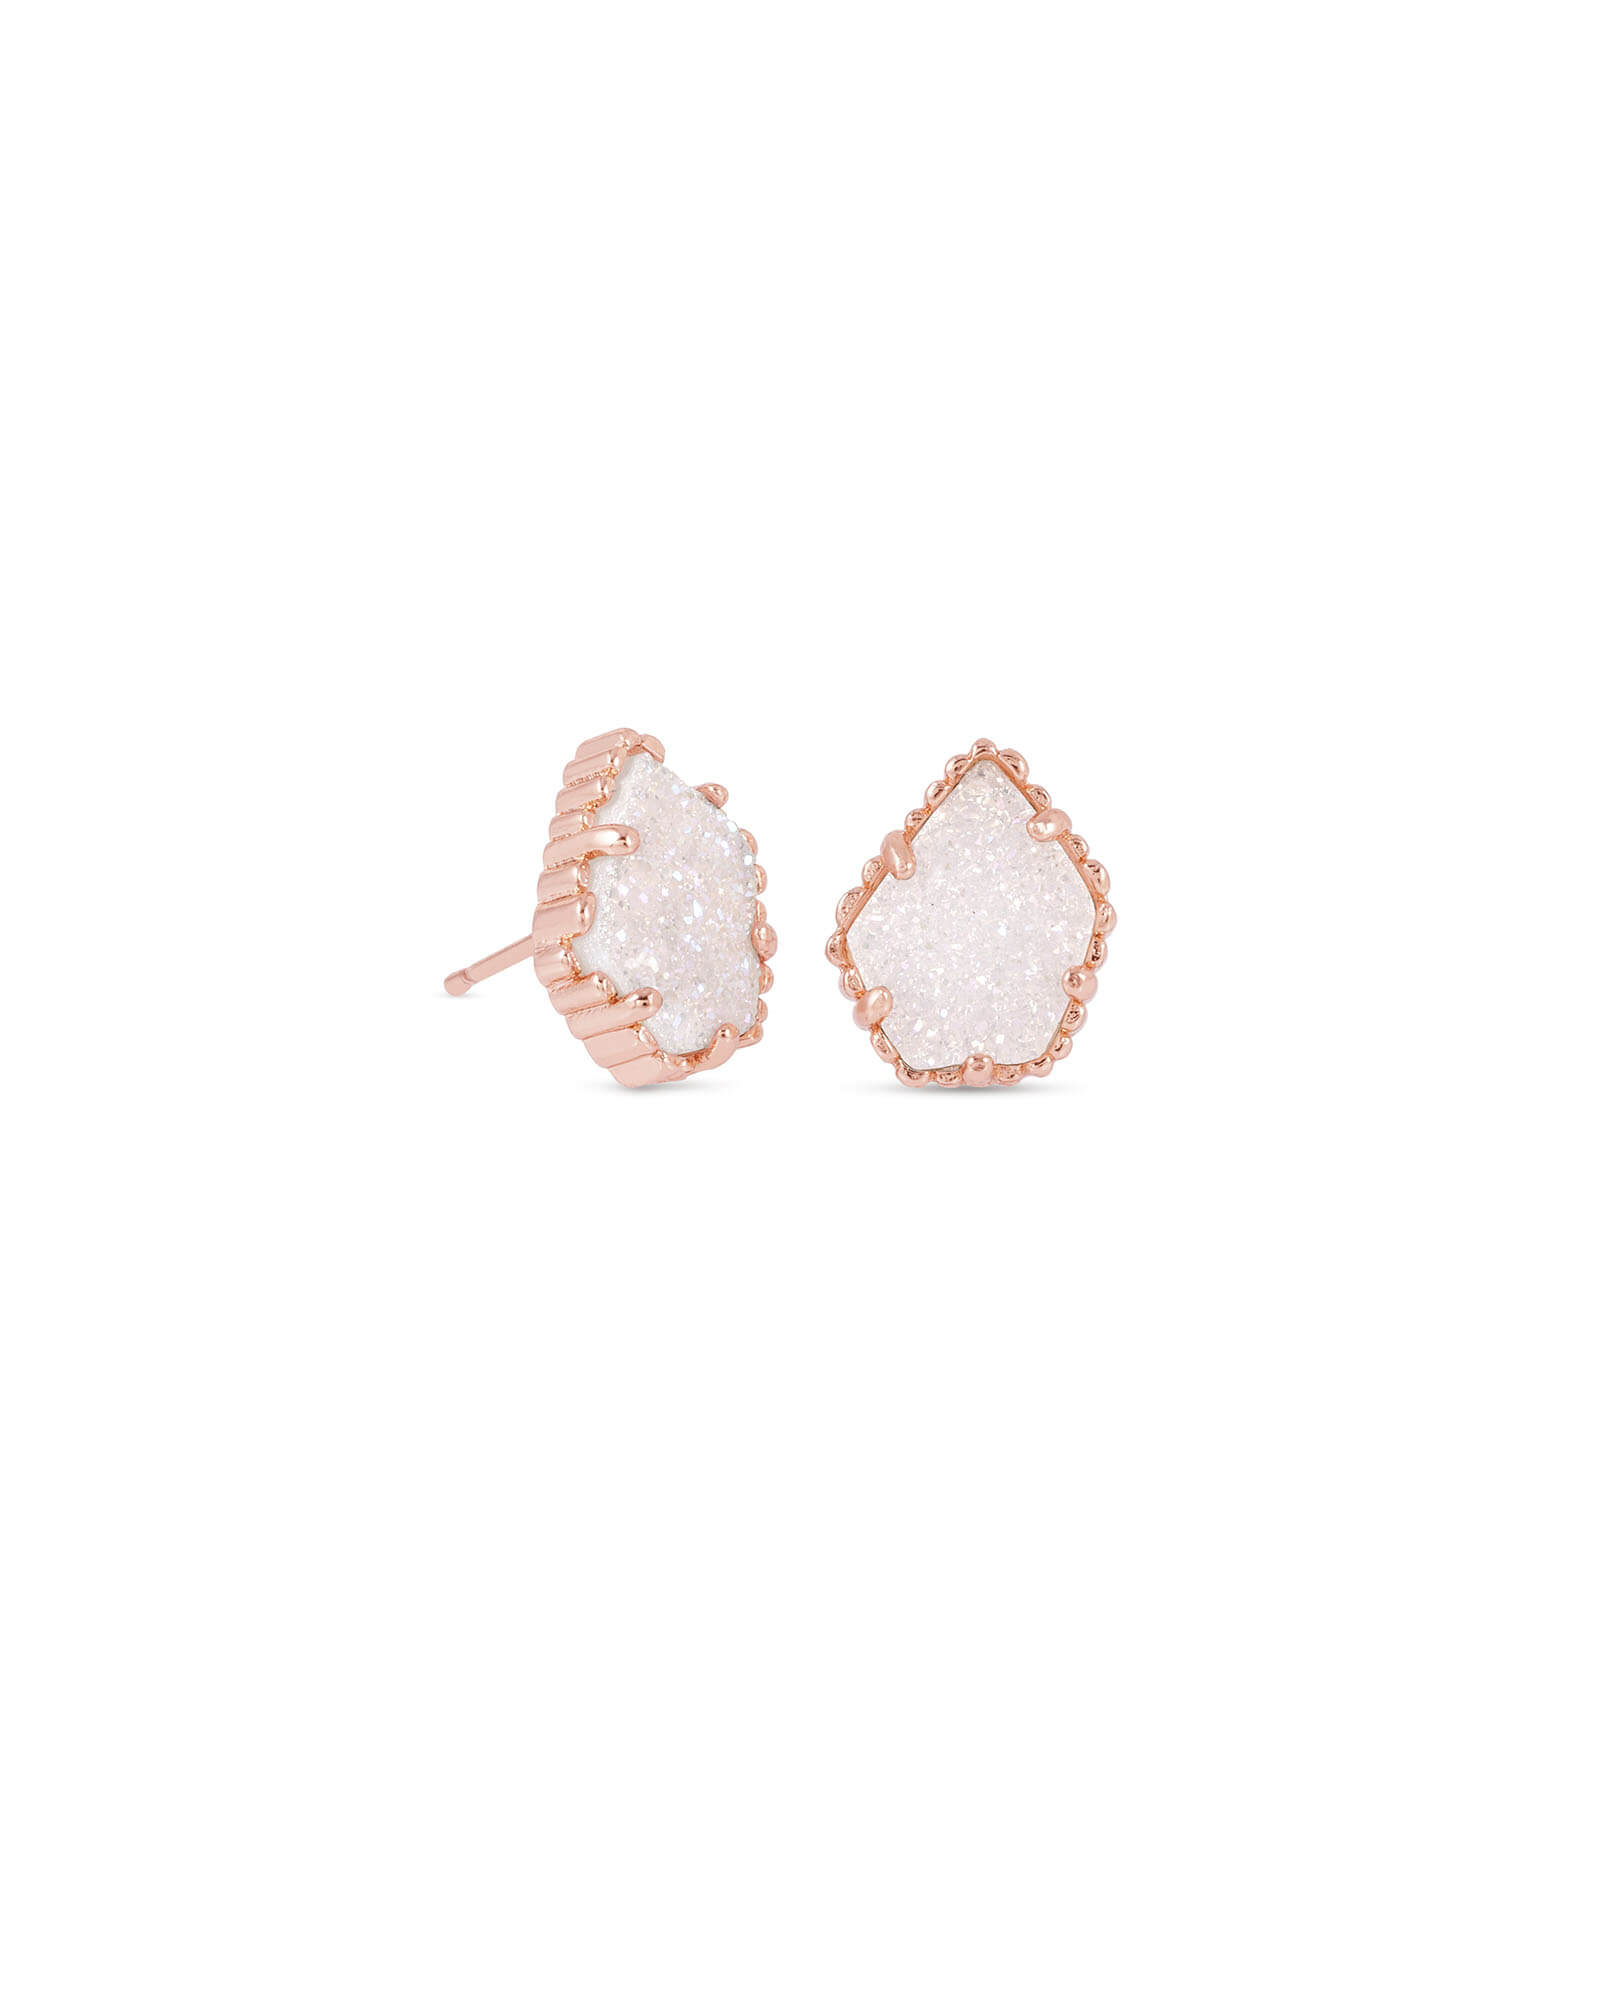 Tessa Rose Gold Stud Earrings in Iridescent Drusy